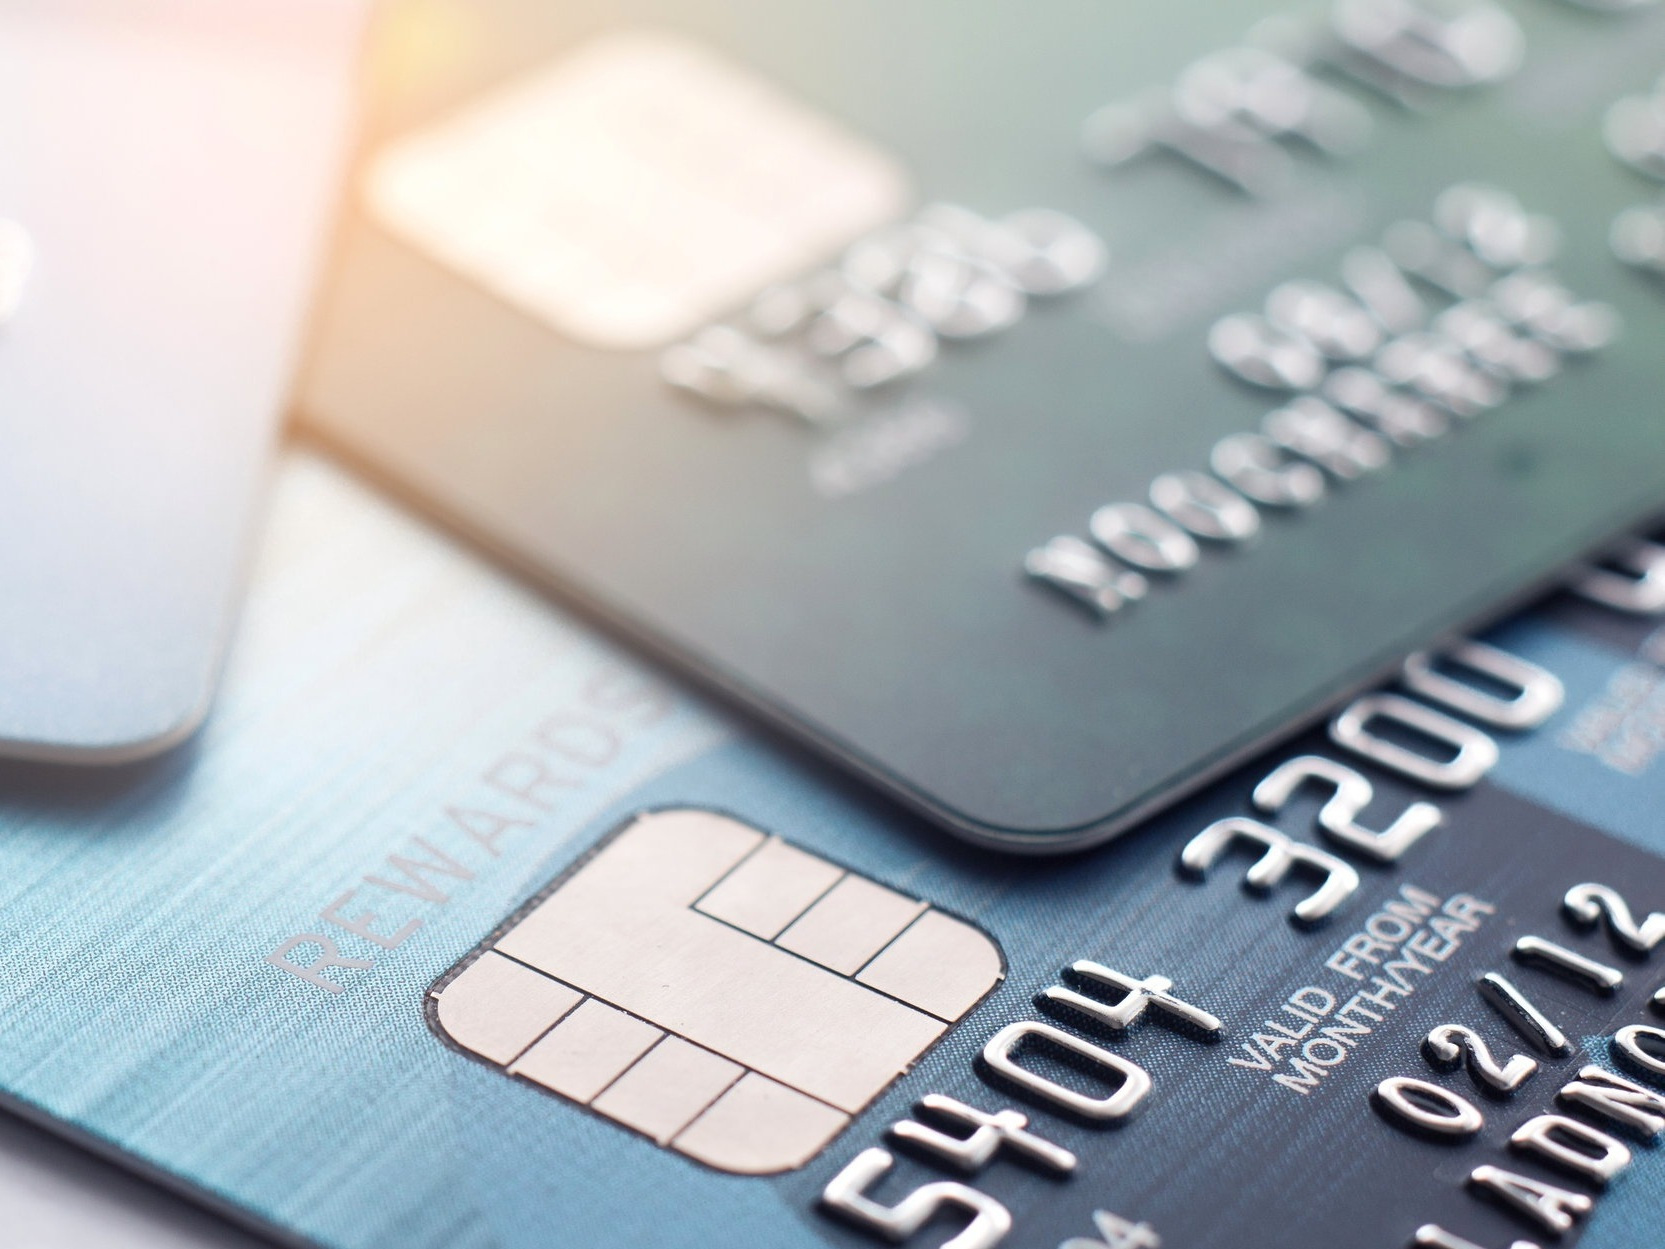 Let Finance Guru help you choose the credit card that's right for you.